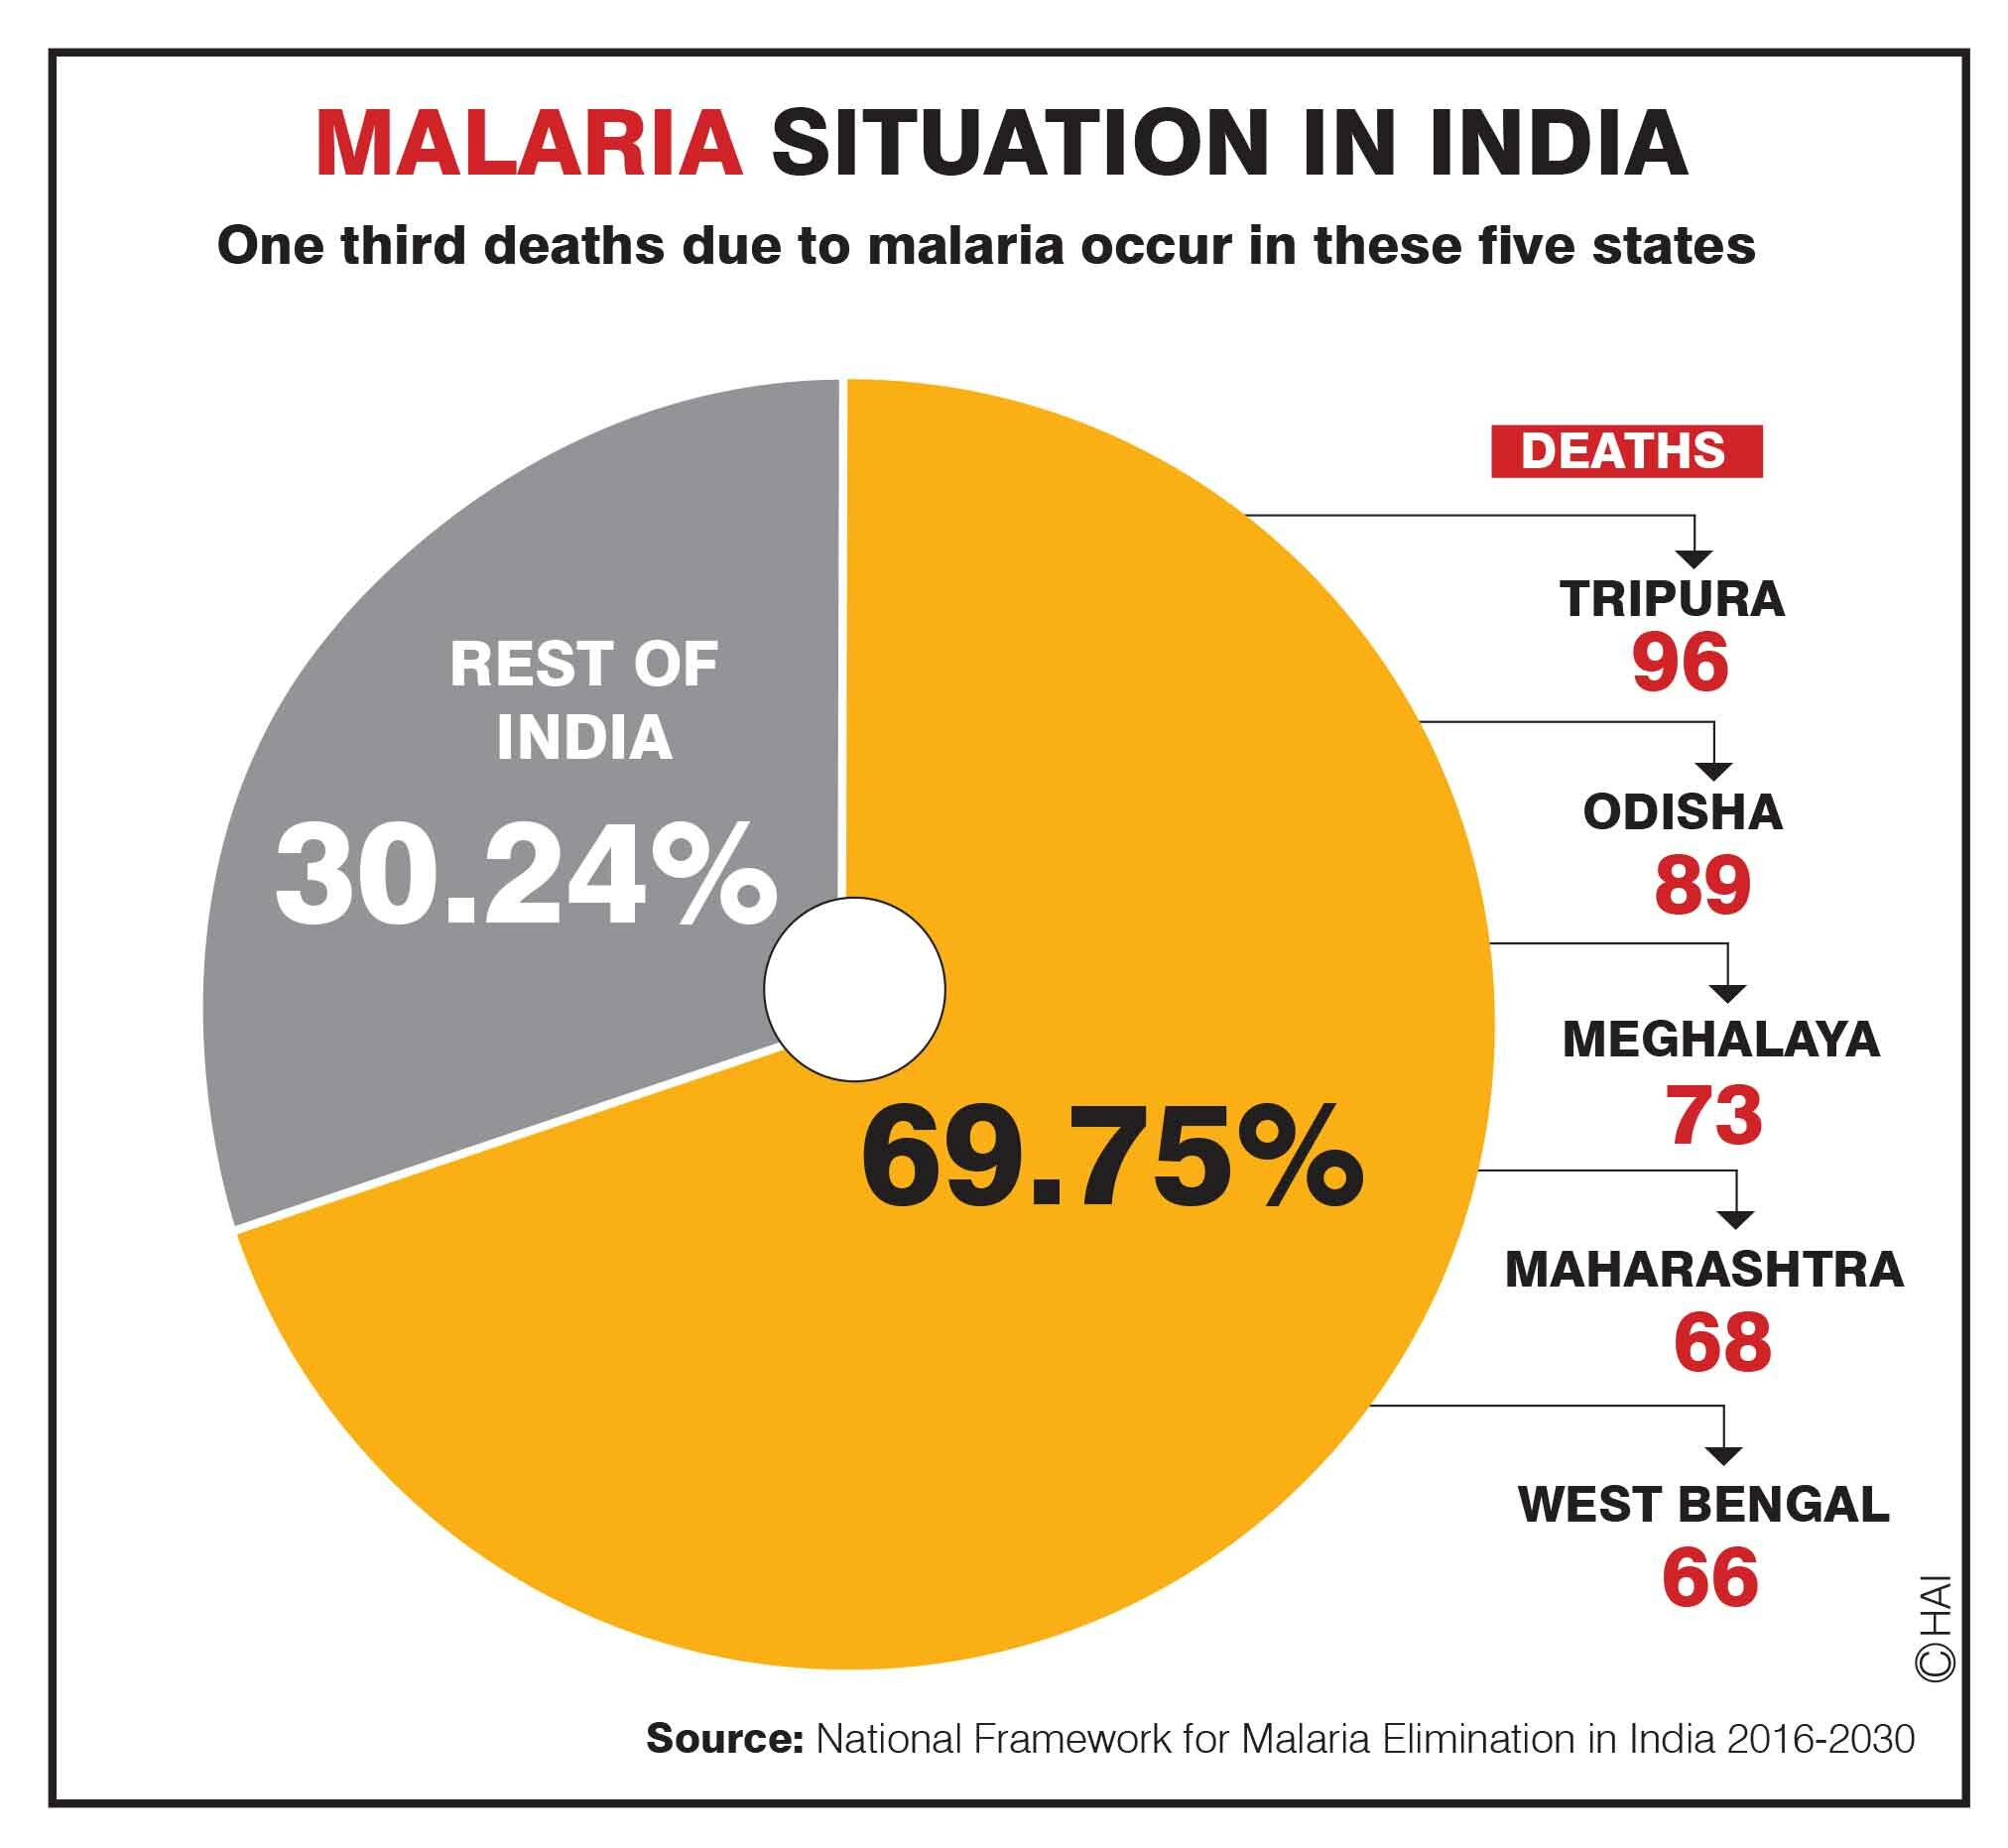 States hit hardest by malaria